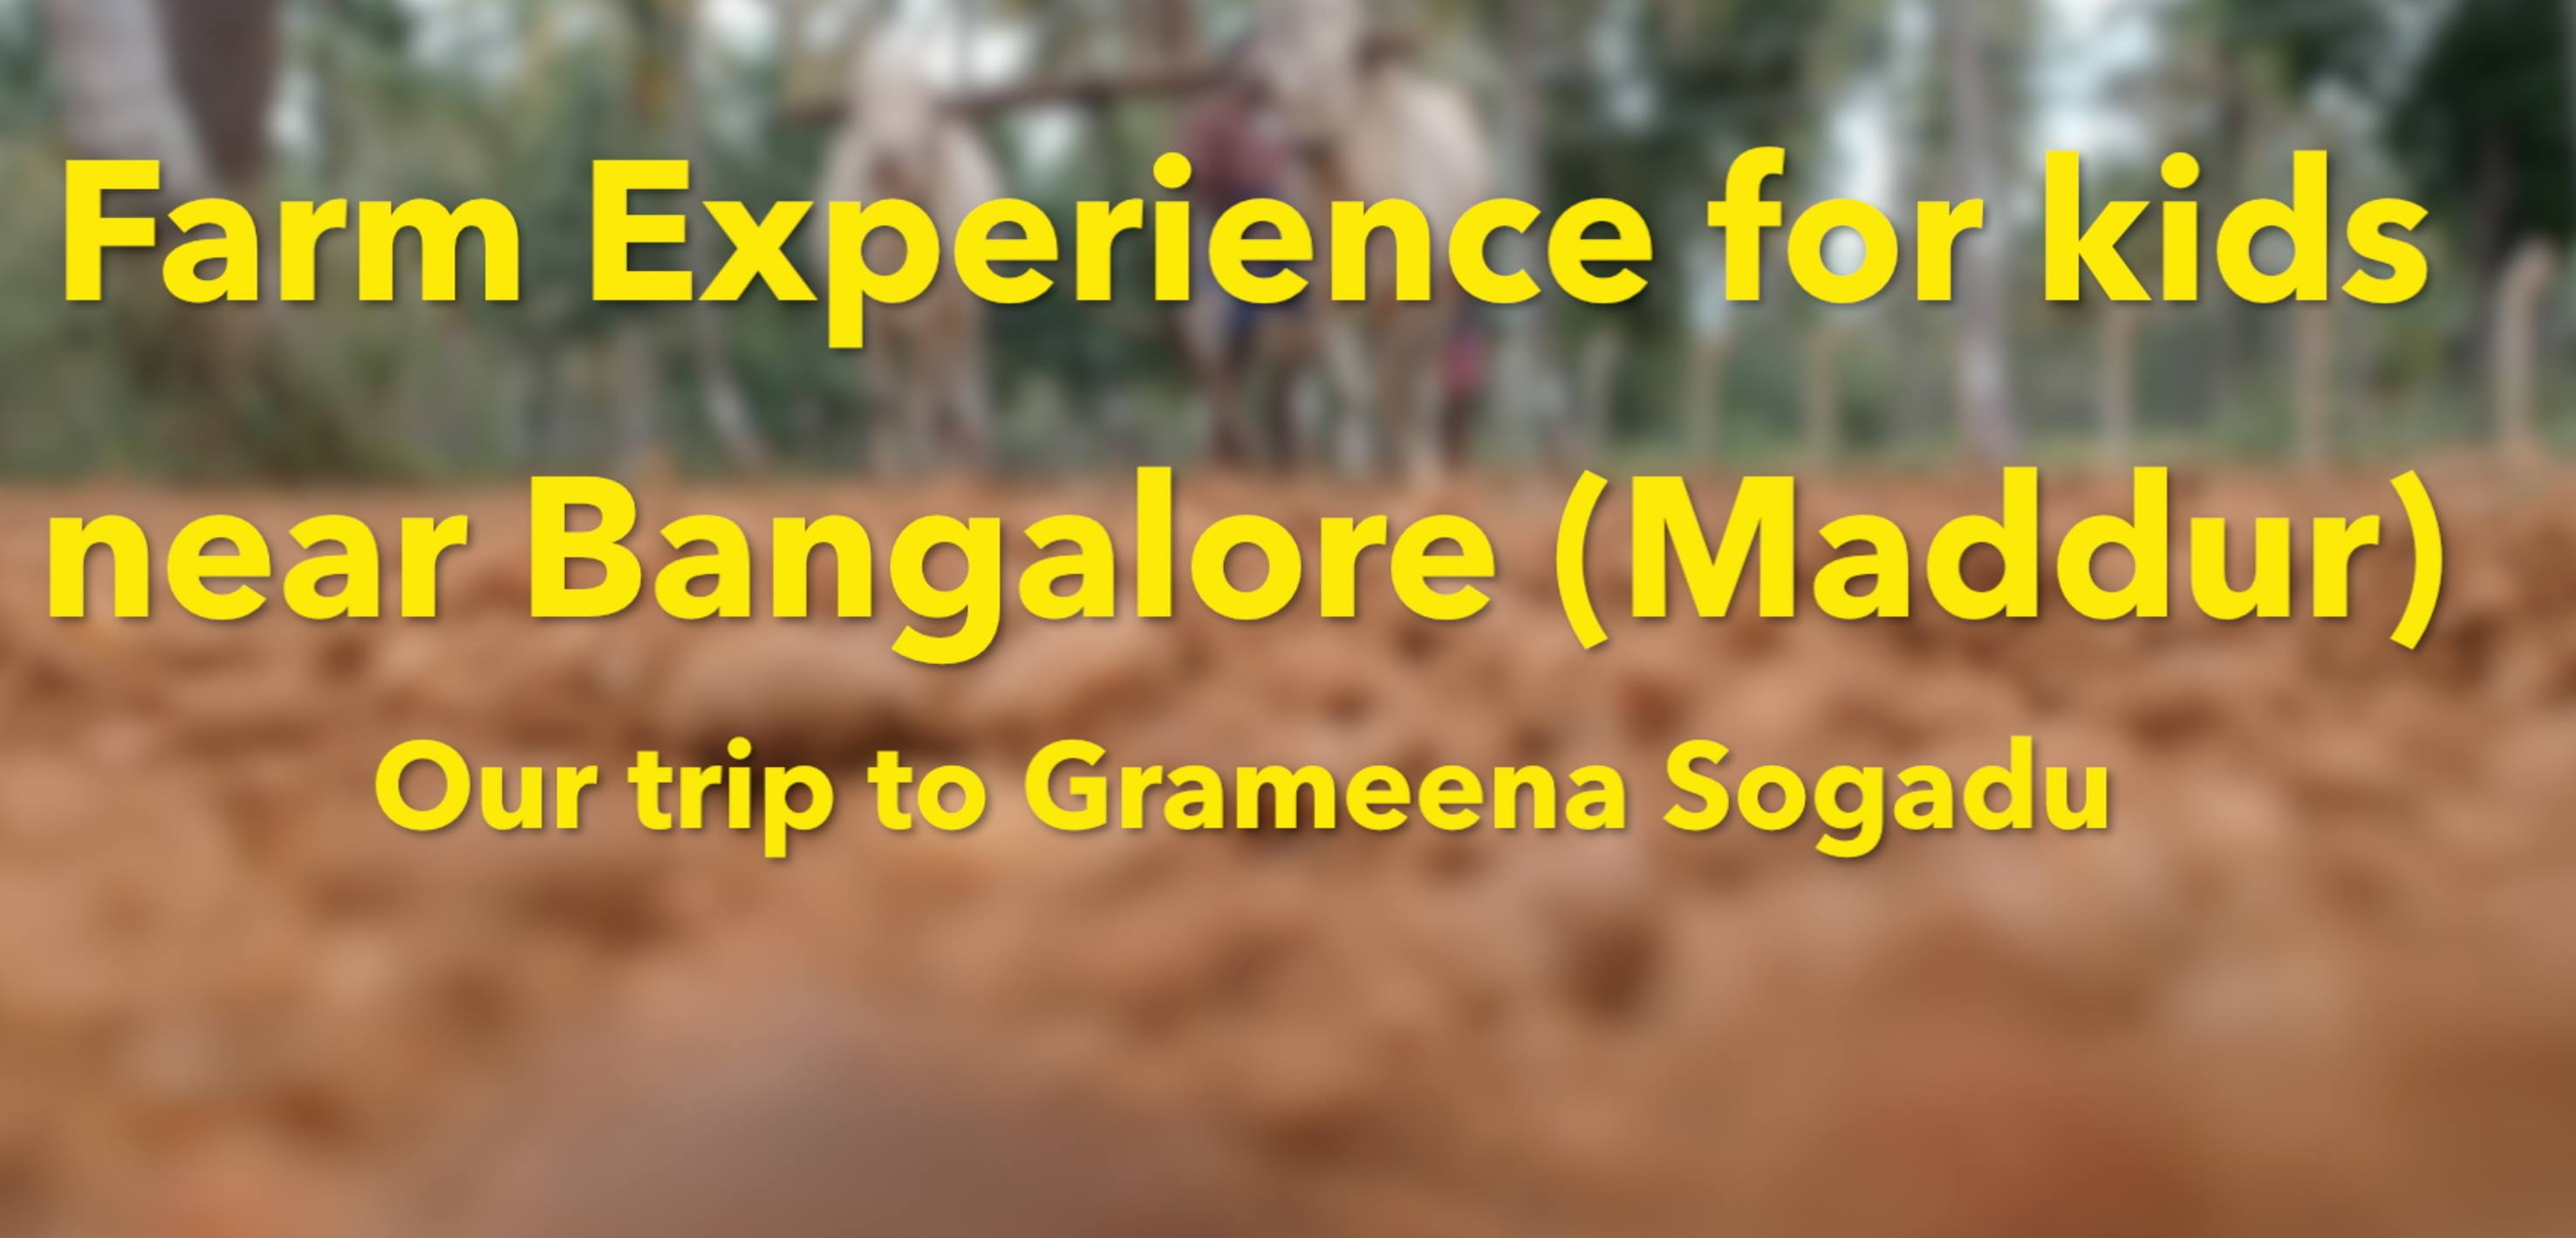 Farming Experience for kids near Bangalore